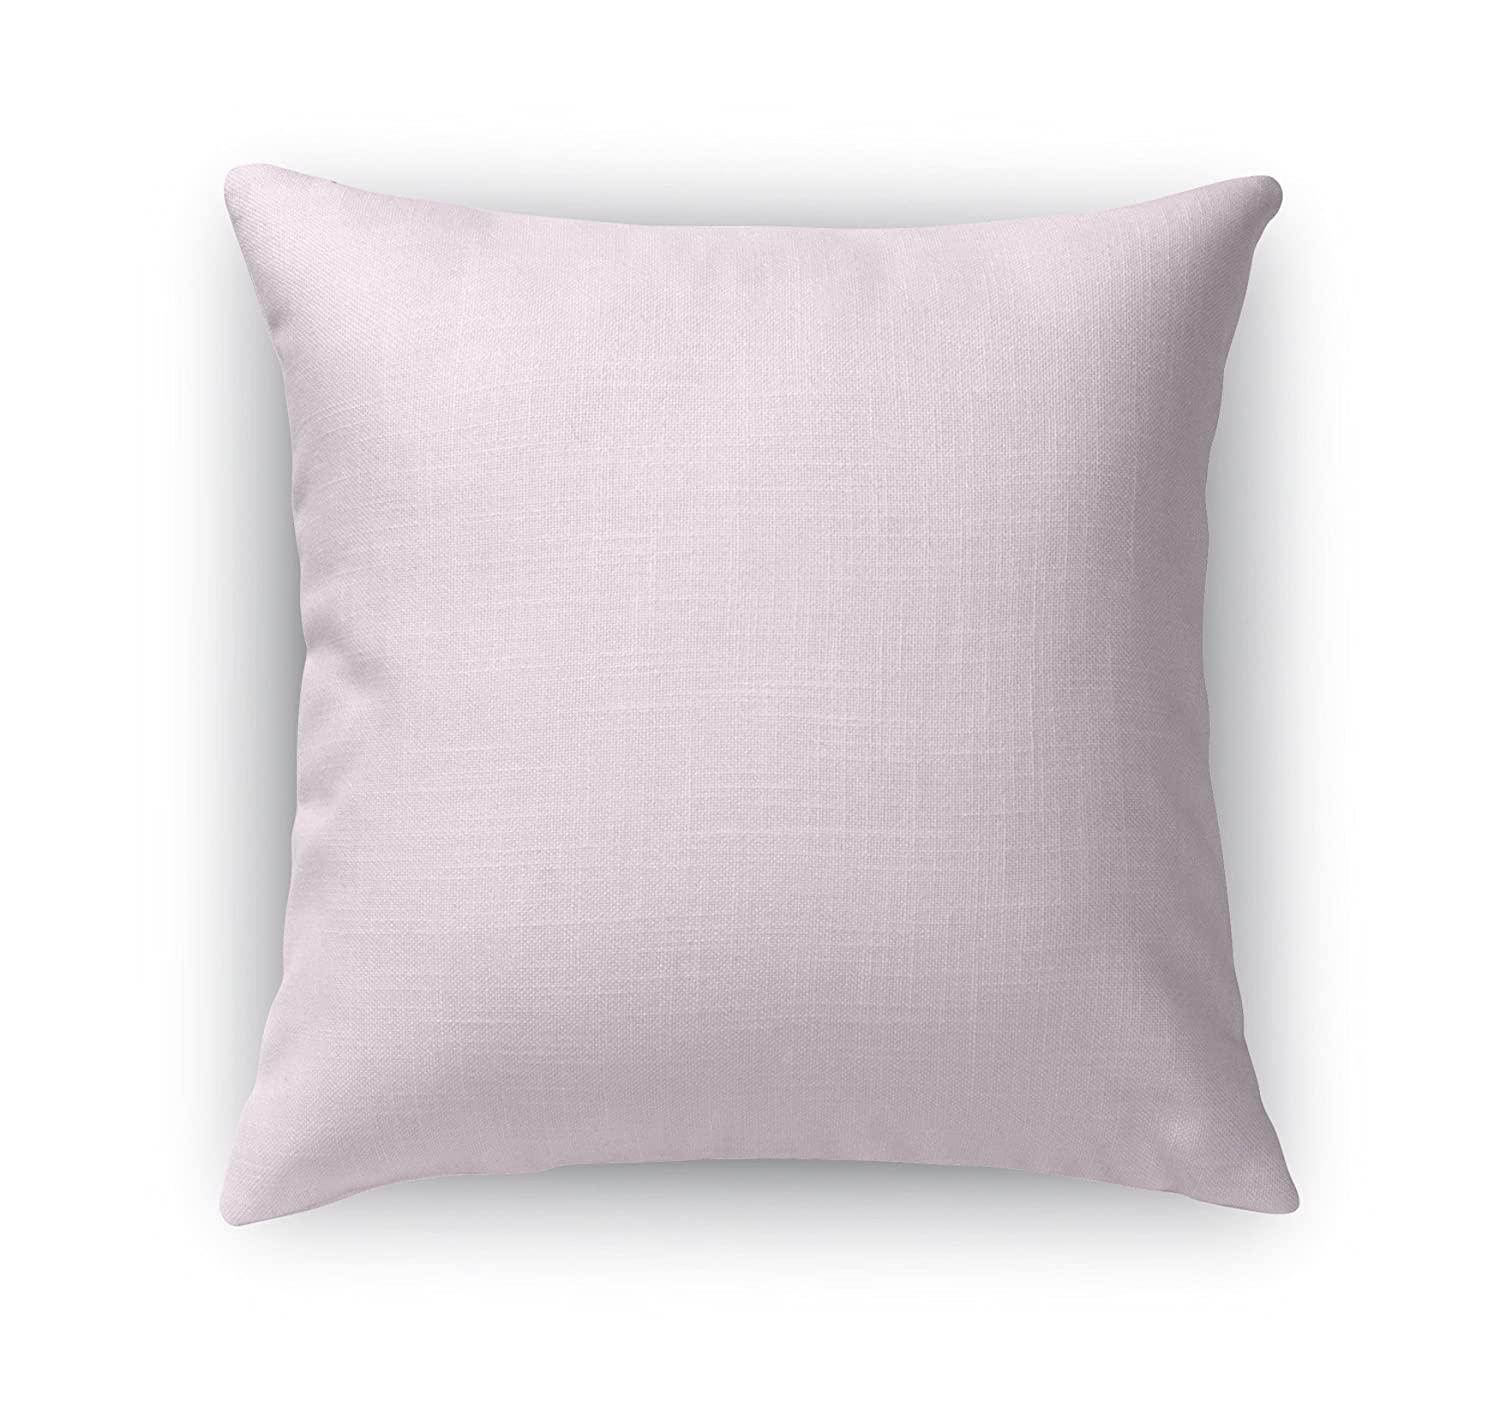 SCRAVC3008DI16 Size: 16X16X6 - - TRADITIONS Collection KAVKA Designs Spoiled Accent Pillow, Pink